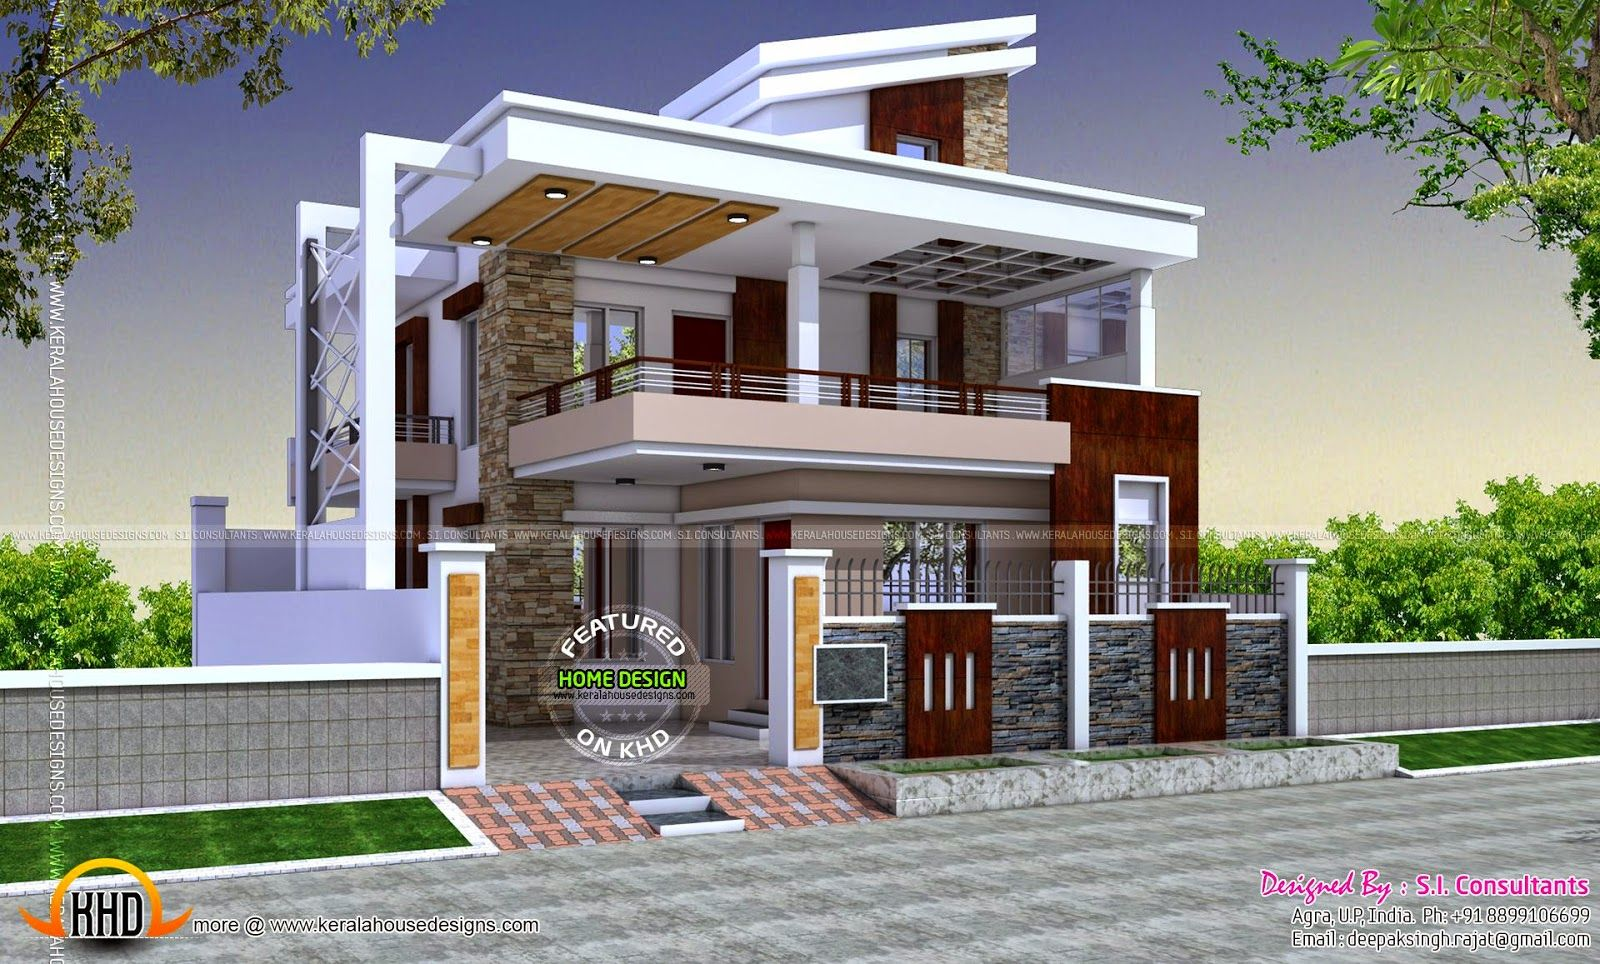 Amazing 80 Model Home Design Design Ideas Of House Plans India